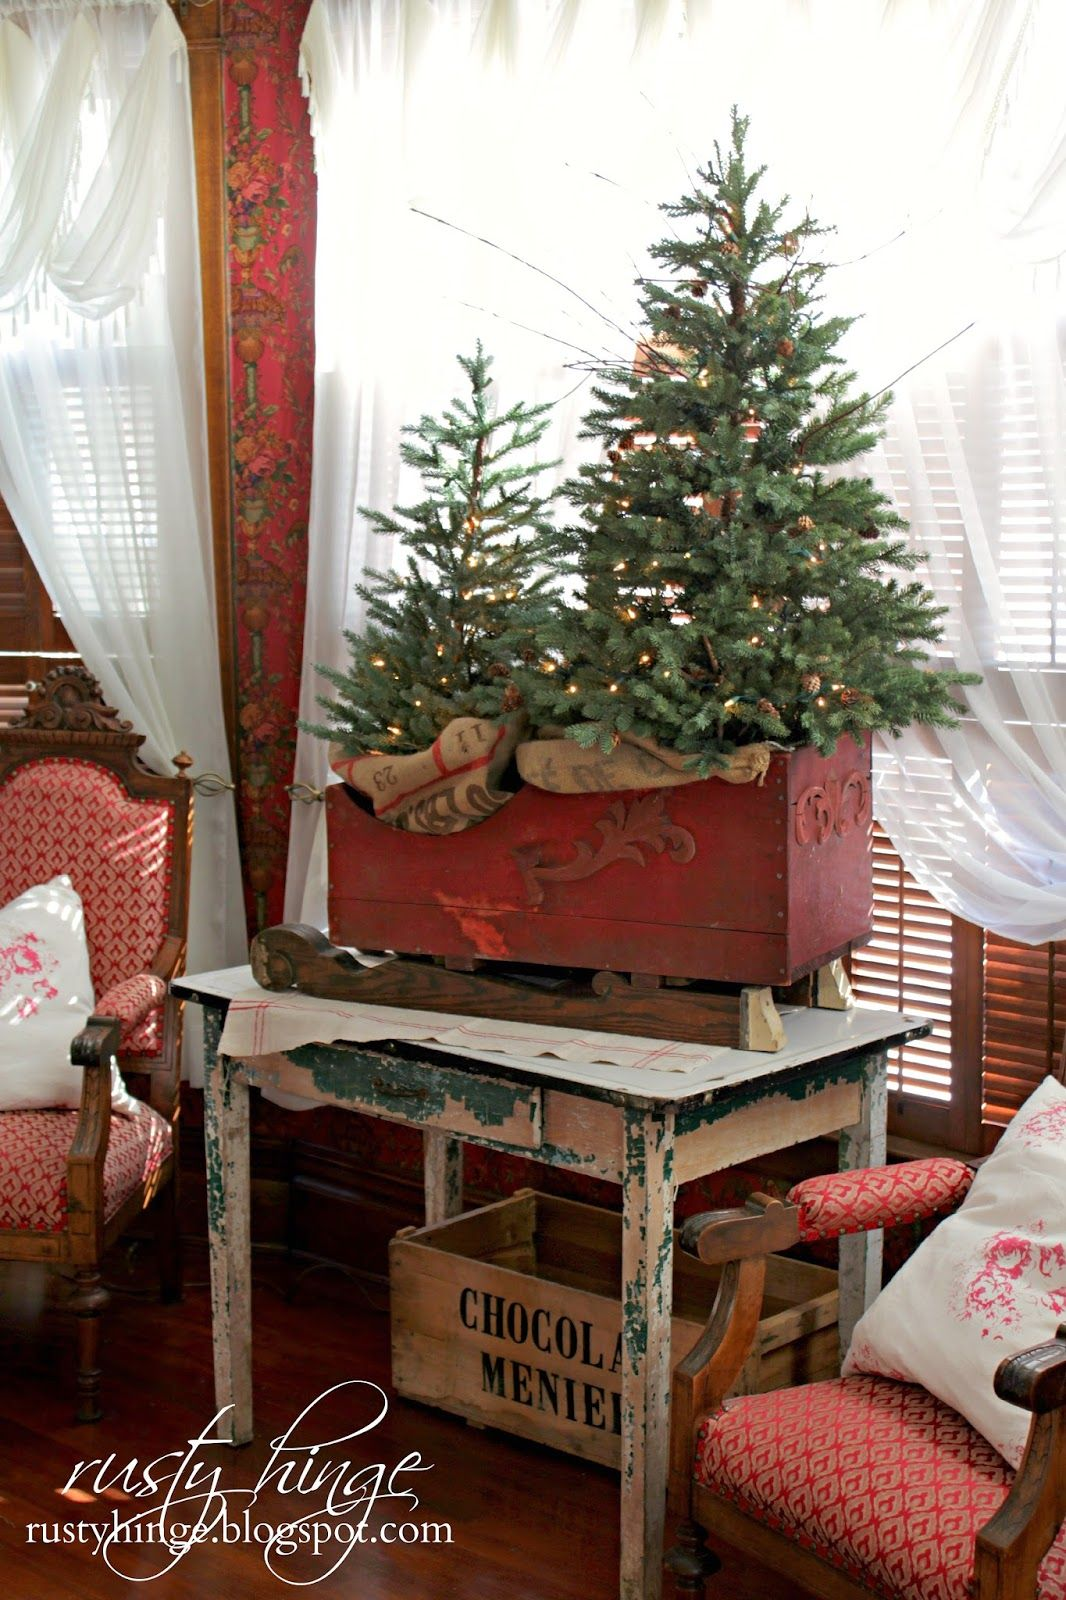 2014 Holiday Housewalk Decking These New Halls Country Christmas TreesSled DecorSmall